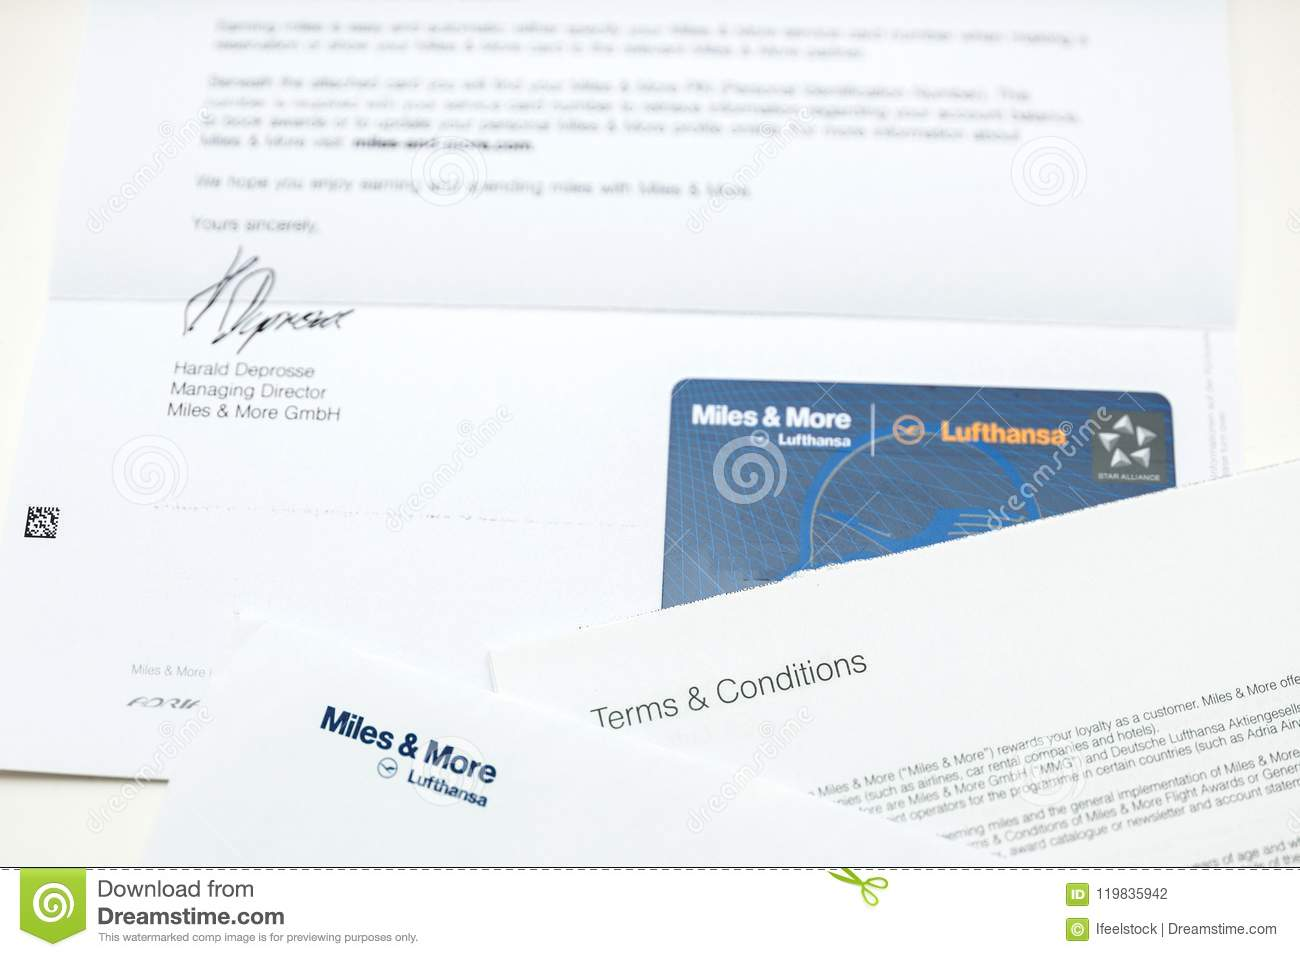 Miles And More Business Miles And More Card Point Card From Lufthansa Editorial